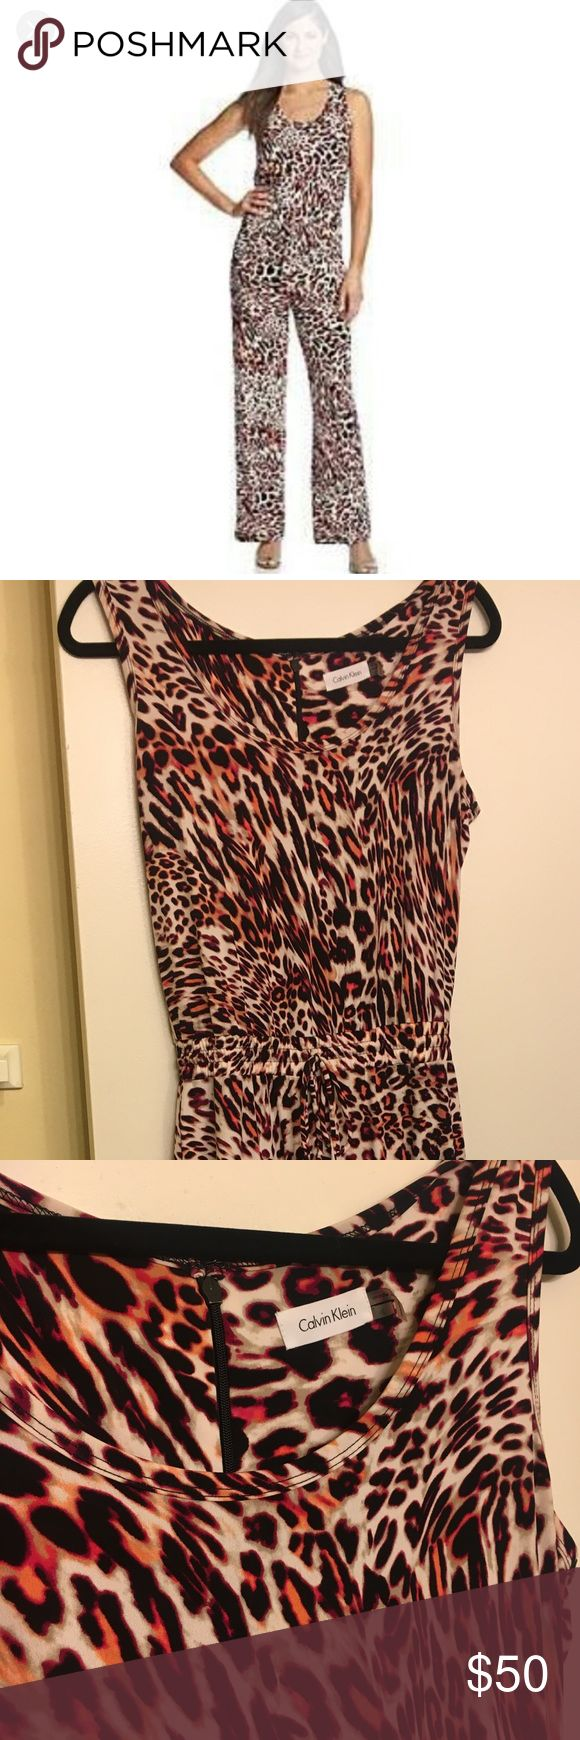 Gorgeous Calvin Klein animal print jumpsuit Gorgeous Calvin Klein animal print jumpsuit size 4. New , excellent condition Calvin Klein Pants Jumpsuits & Rompers